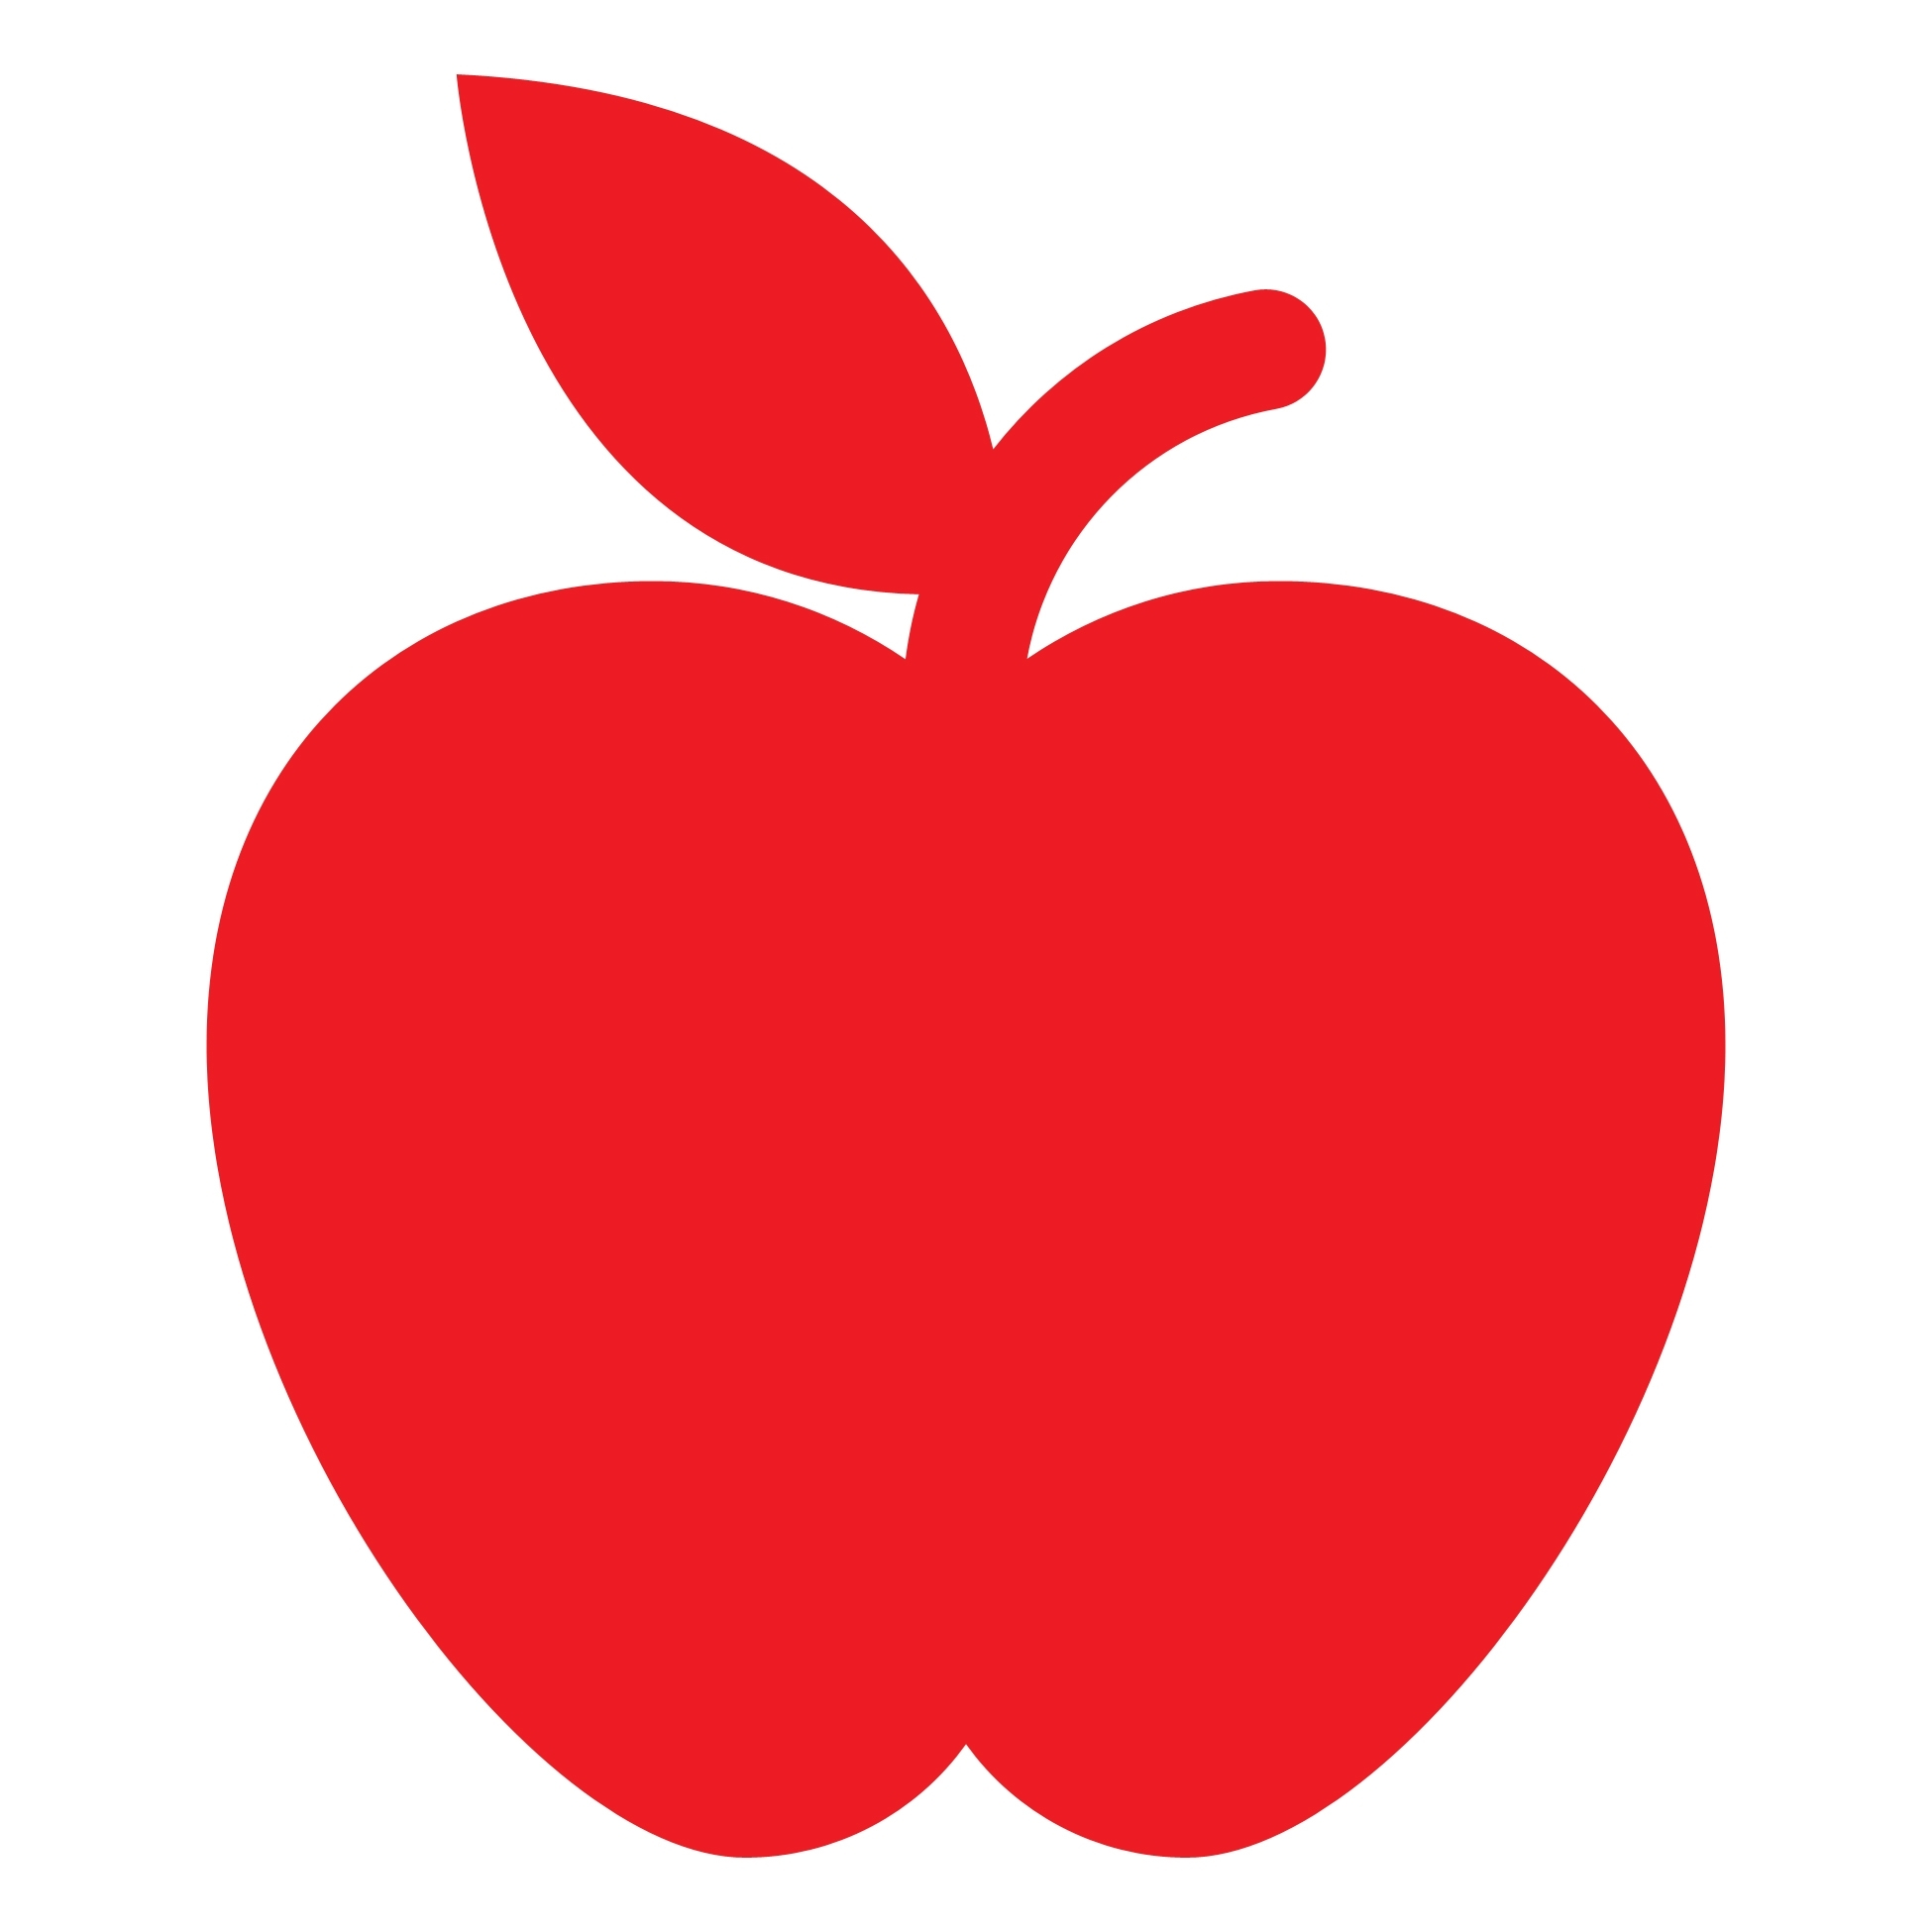 8f731d5b5cd8ea370654_apple_red_rgb_jpg.jpeg